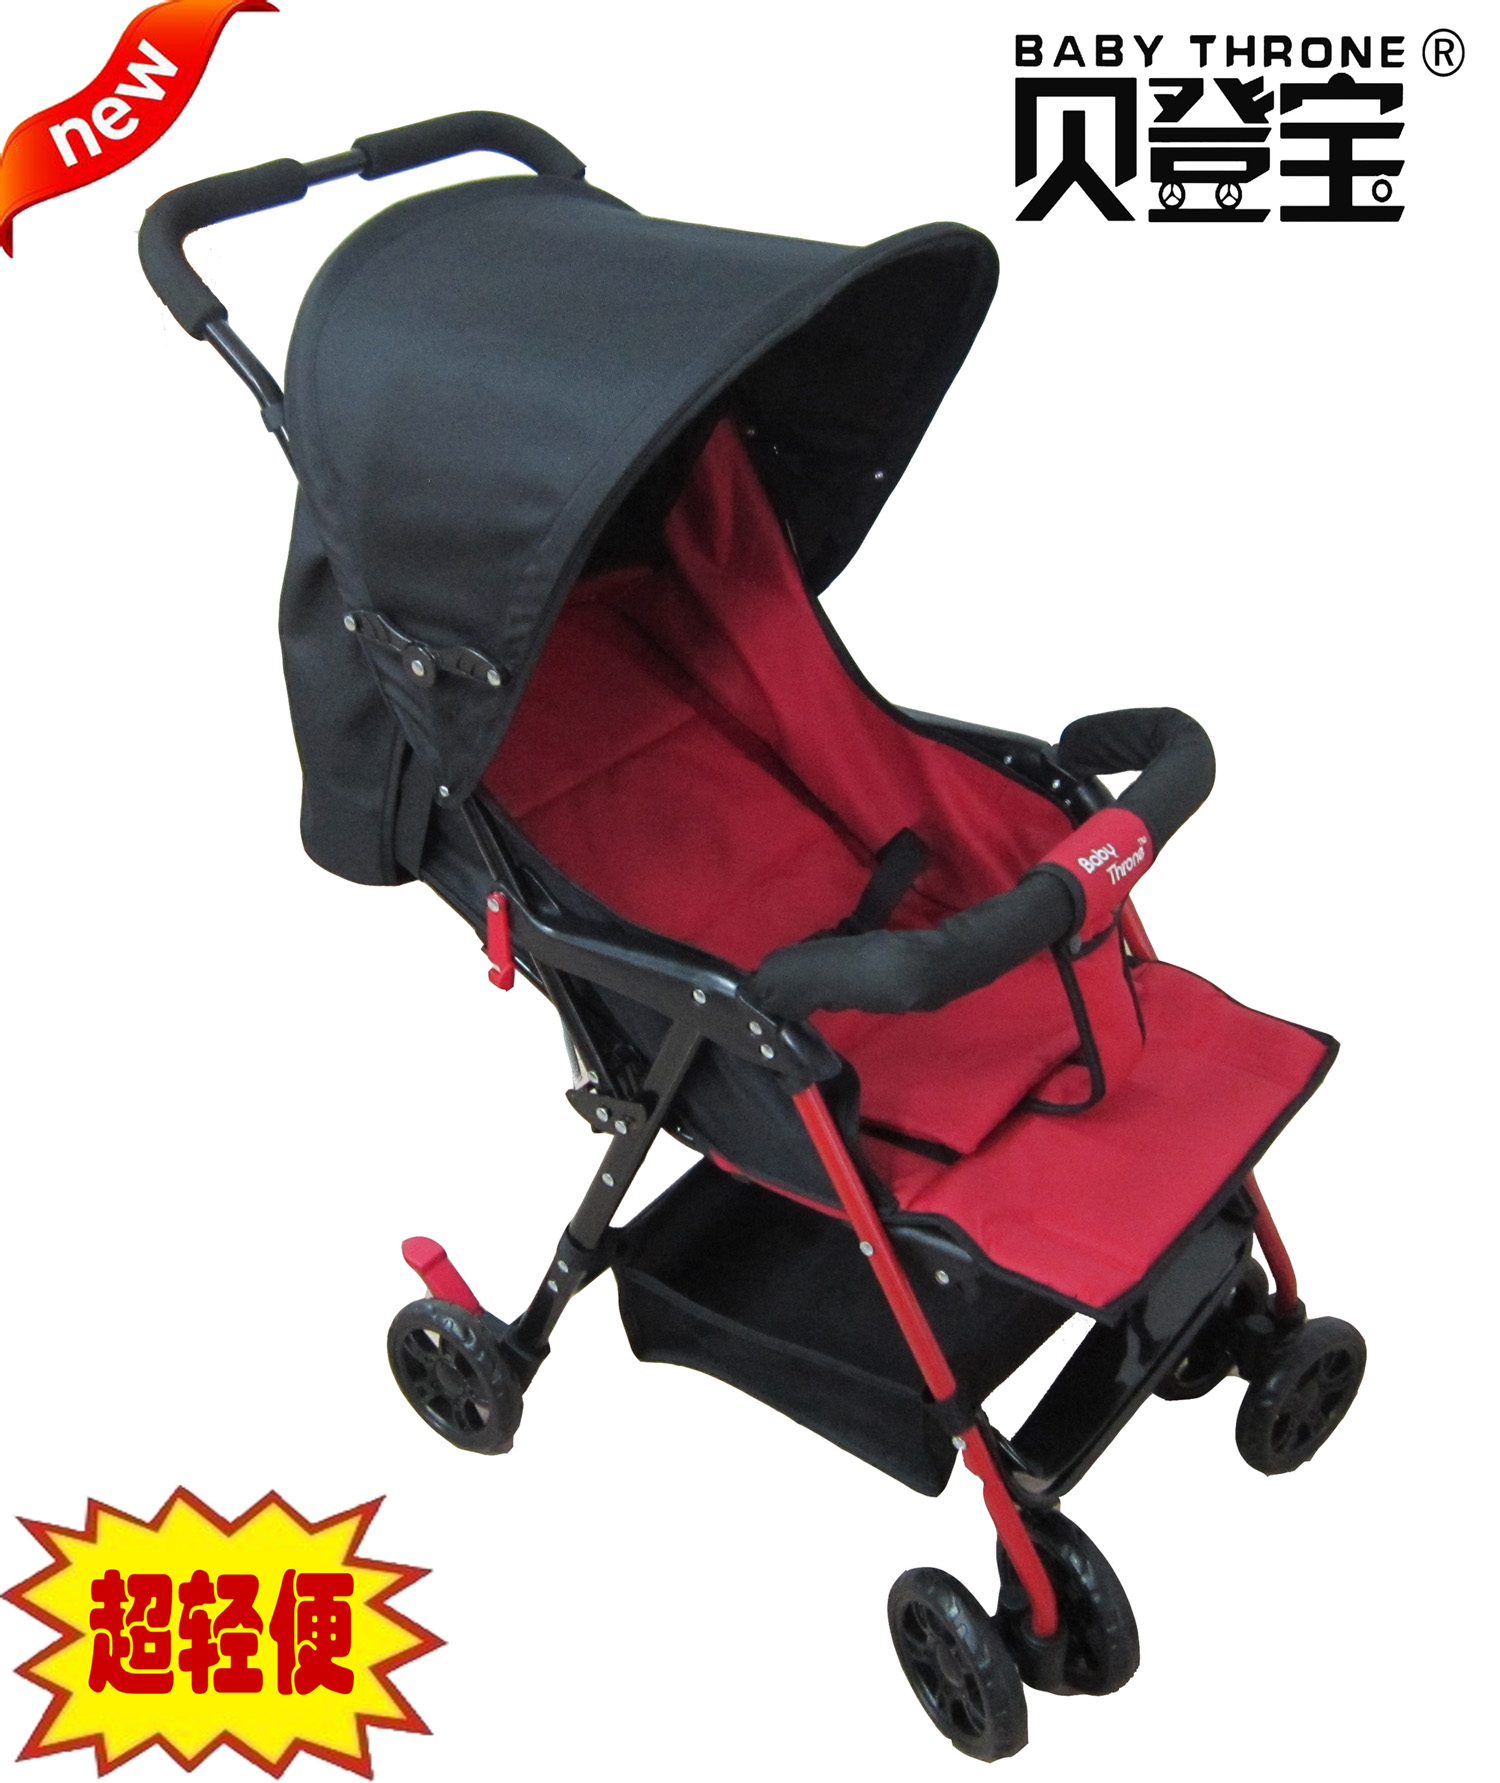 Cheap Stroller Baby Trend Price In Euro Group Of Five